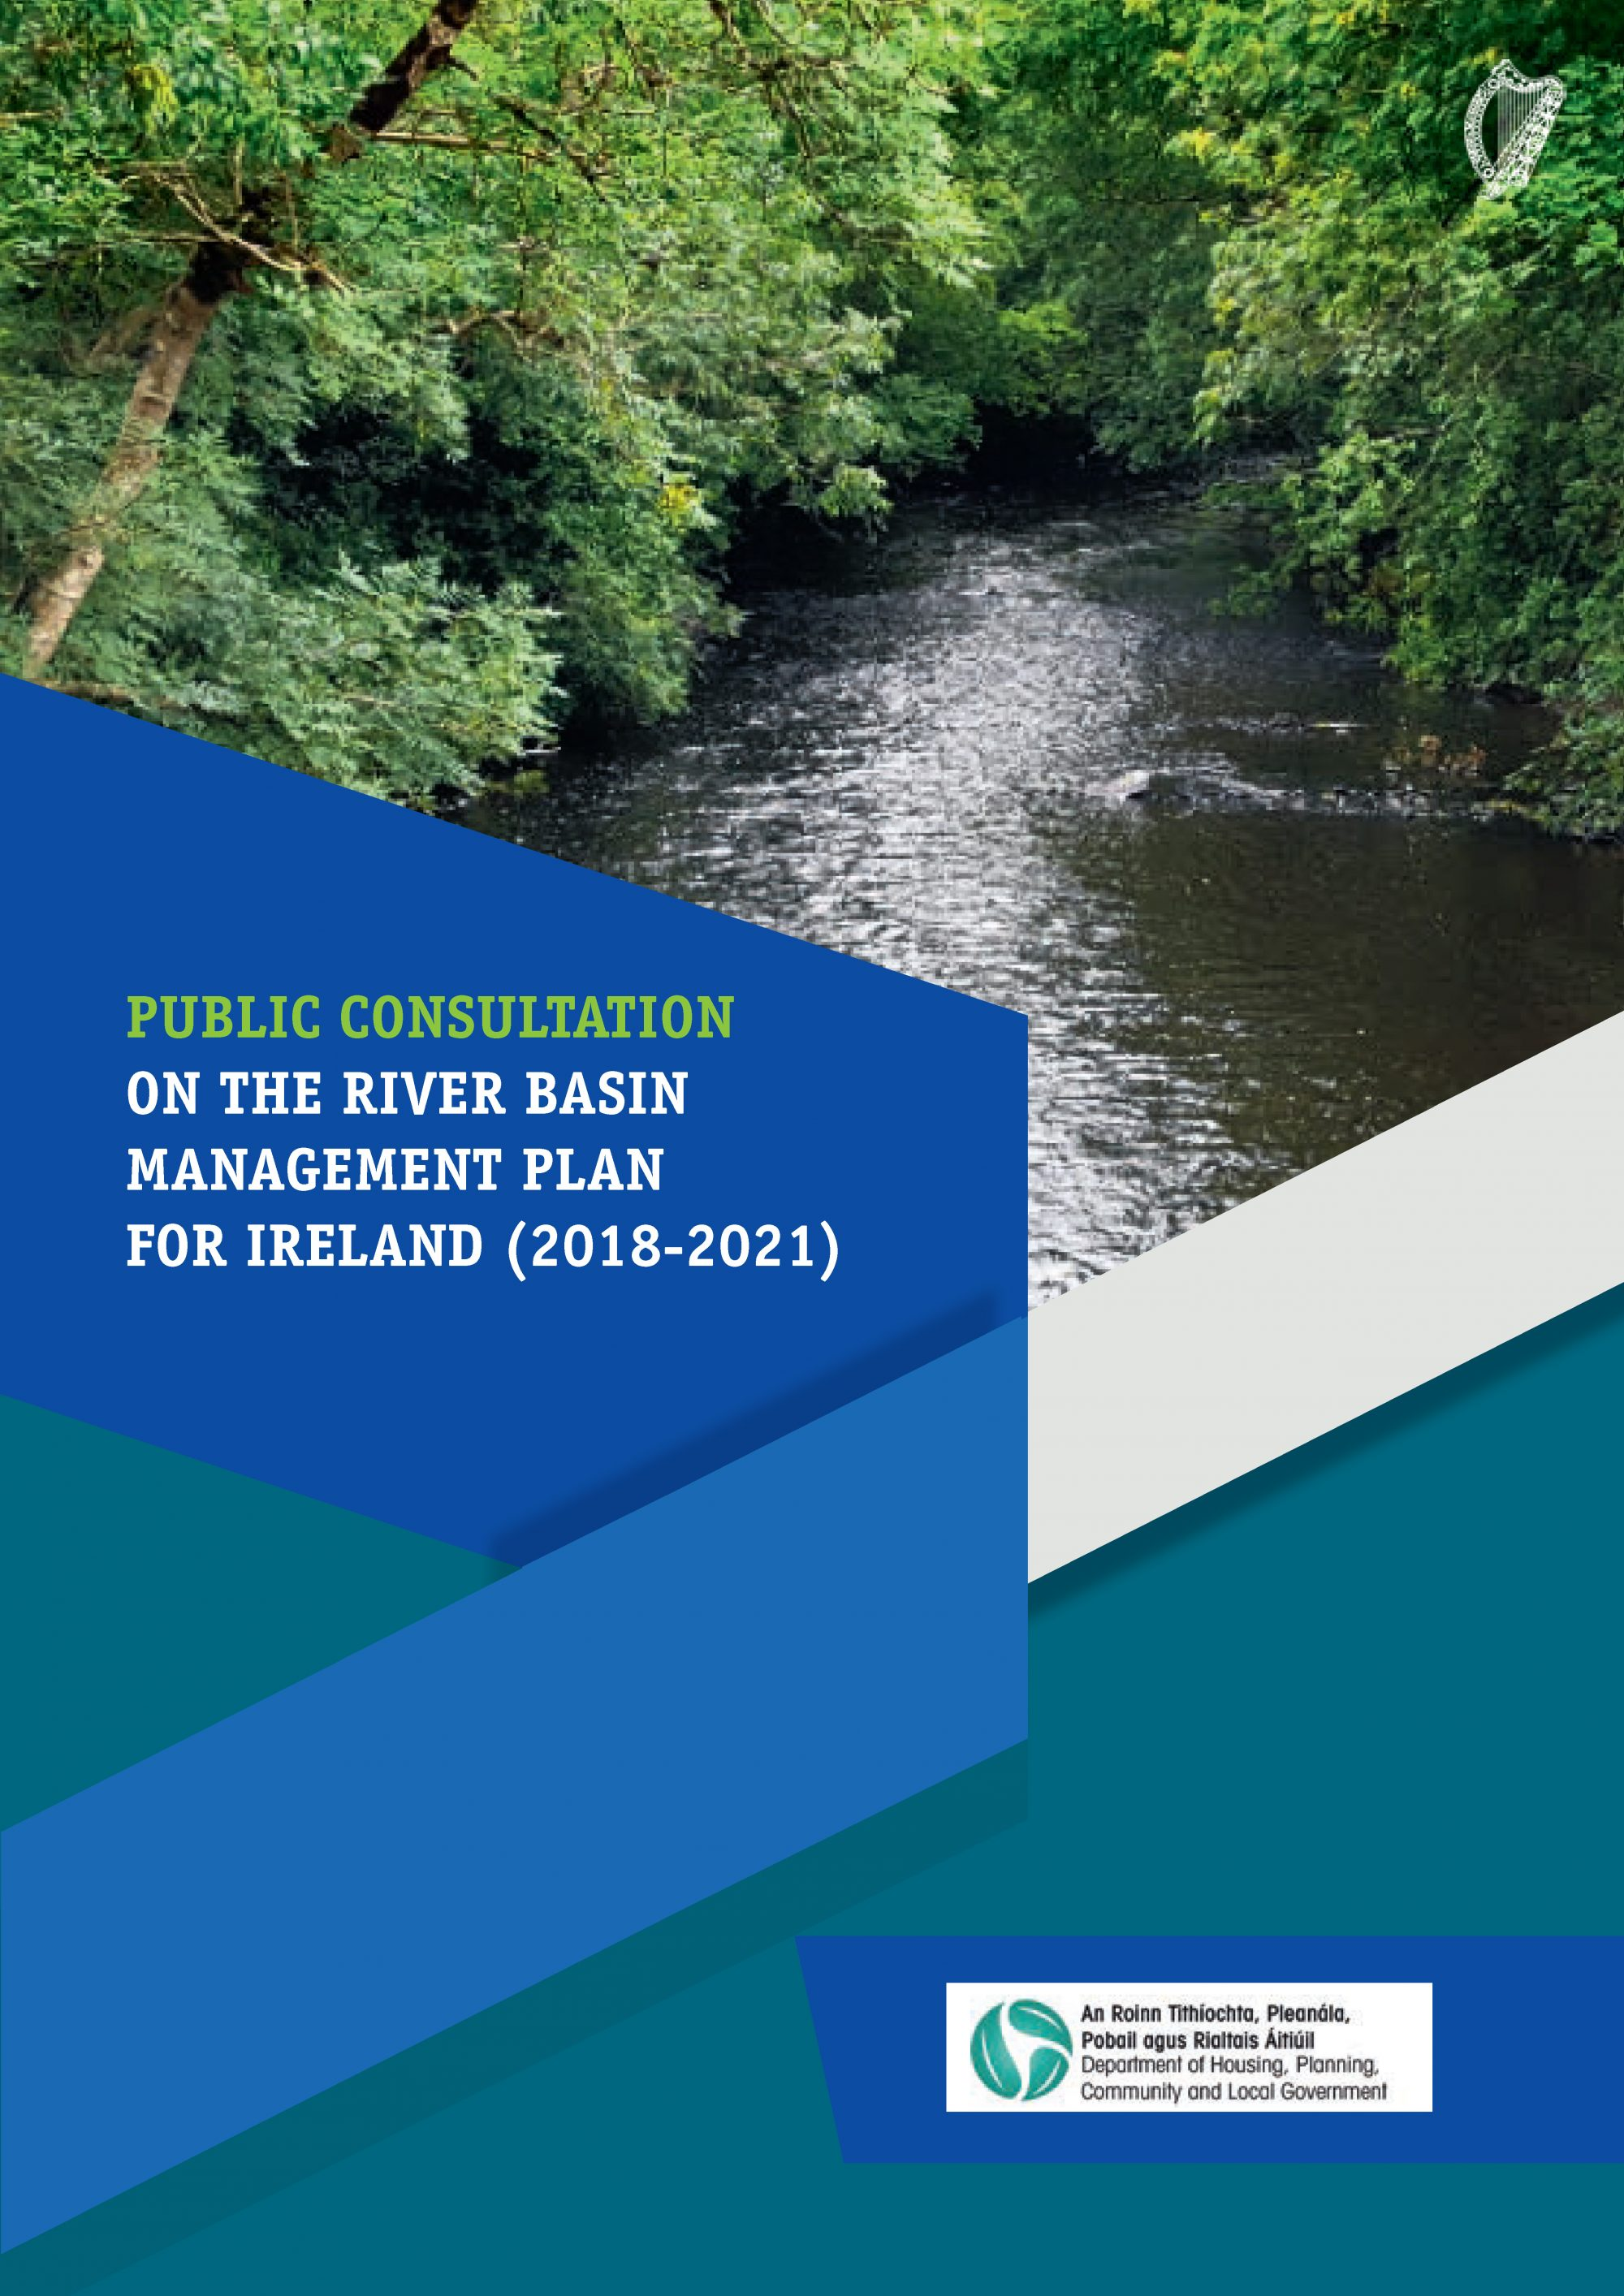 Public Consultation on the River Basin Management Plan for Ireland (2018-2021)